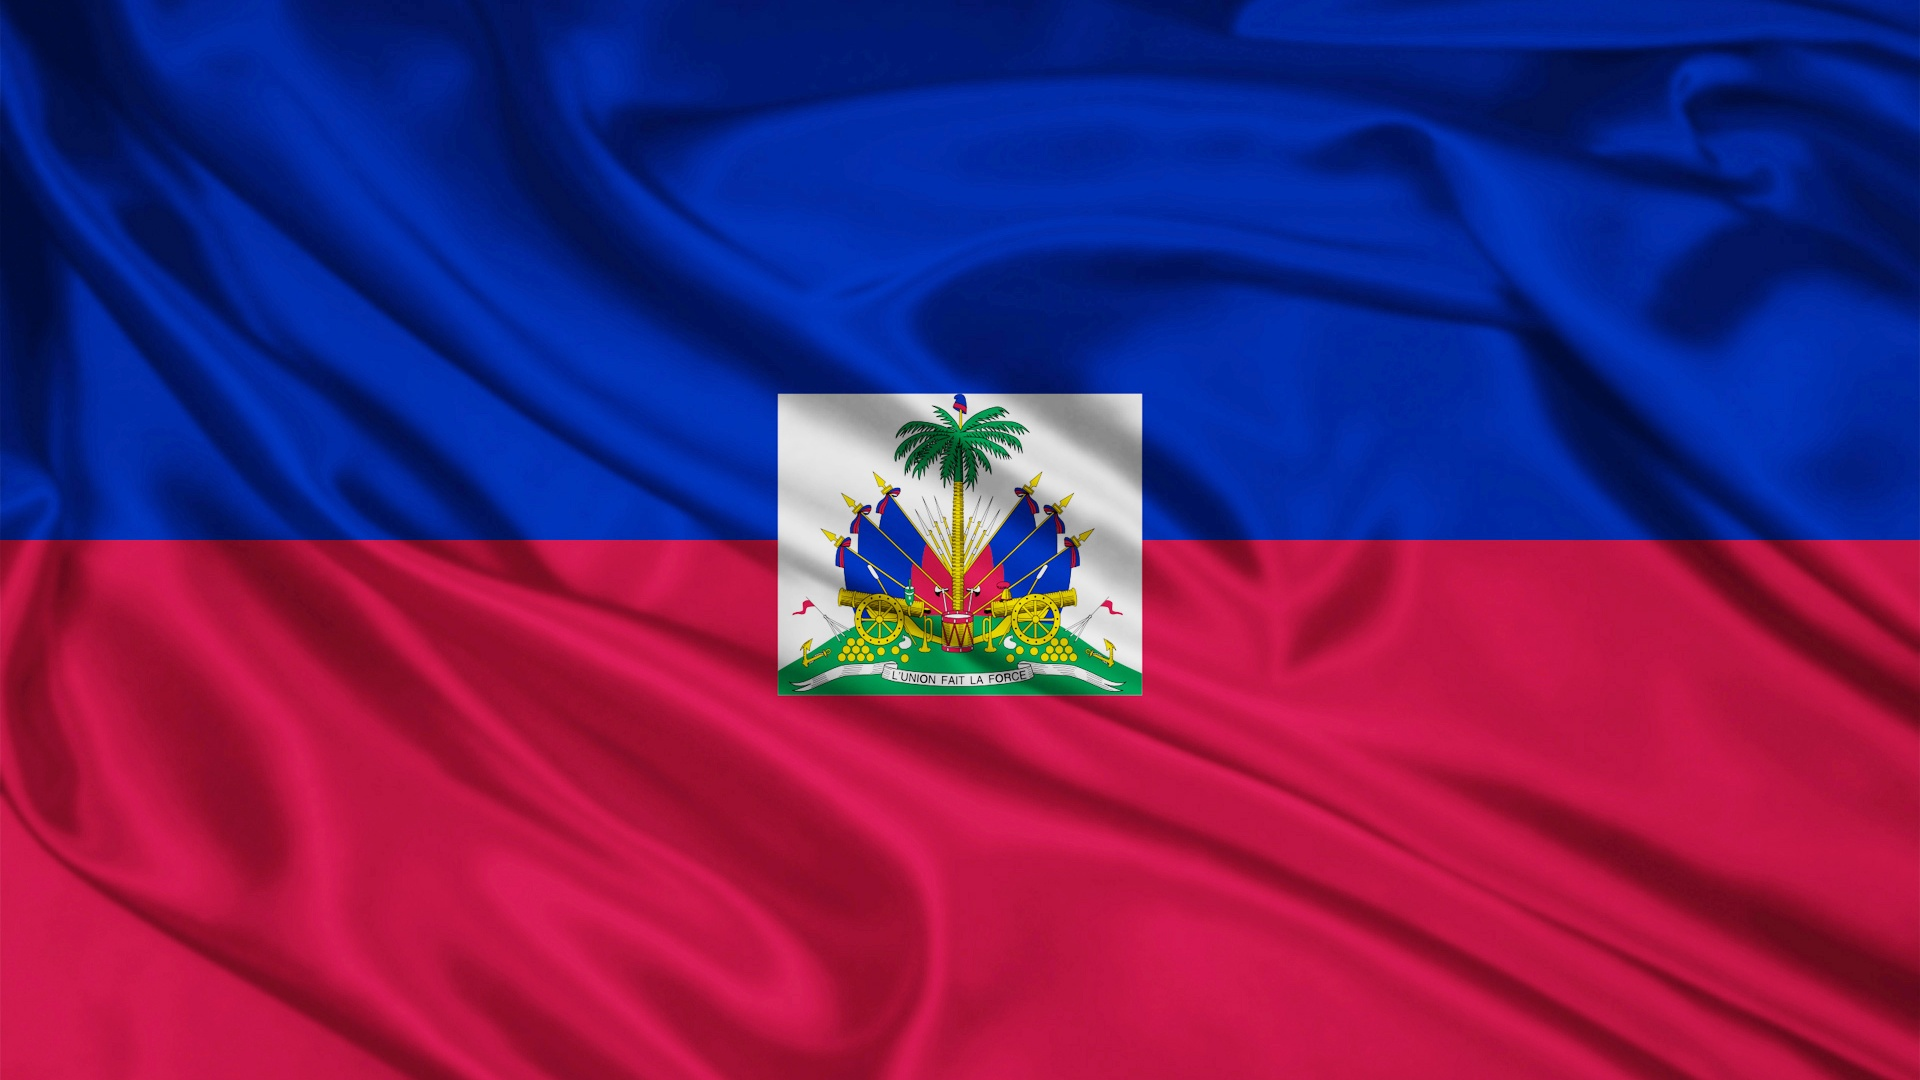 Haitian Flag Wallpaper 1920x1080 Haiti Flag d...